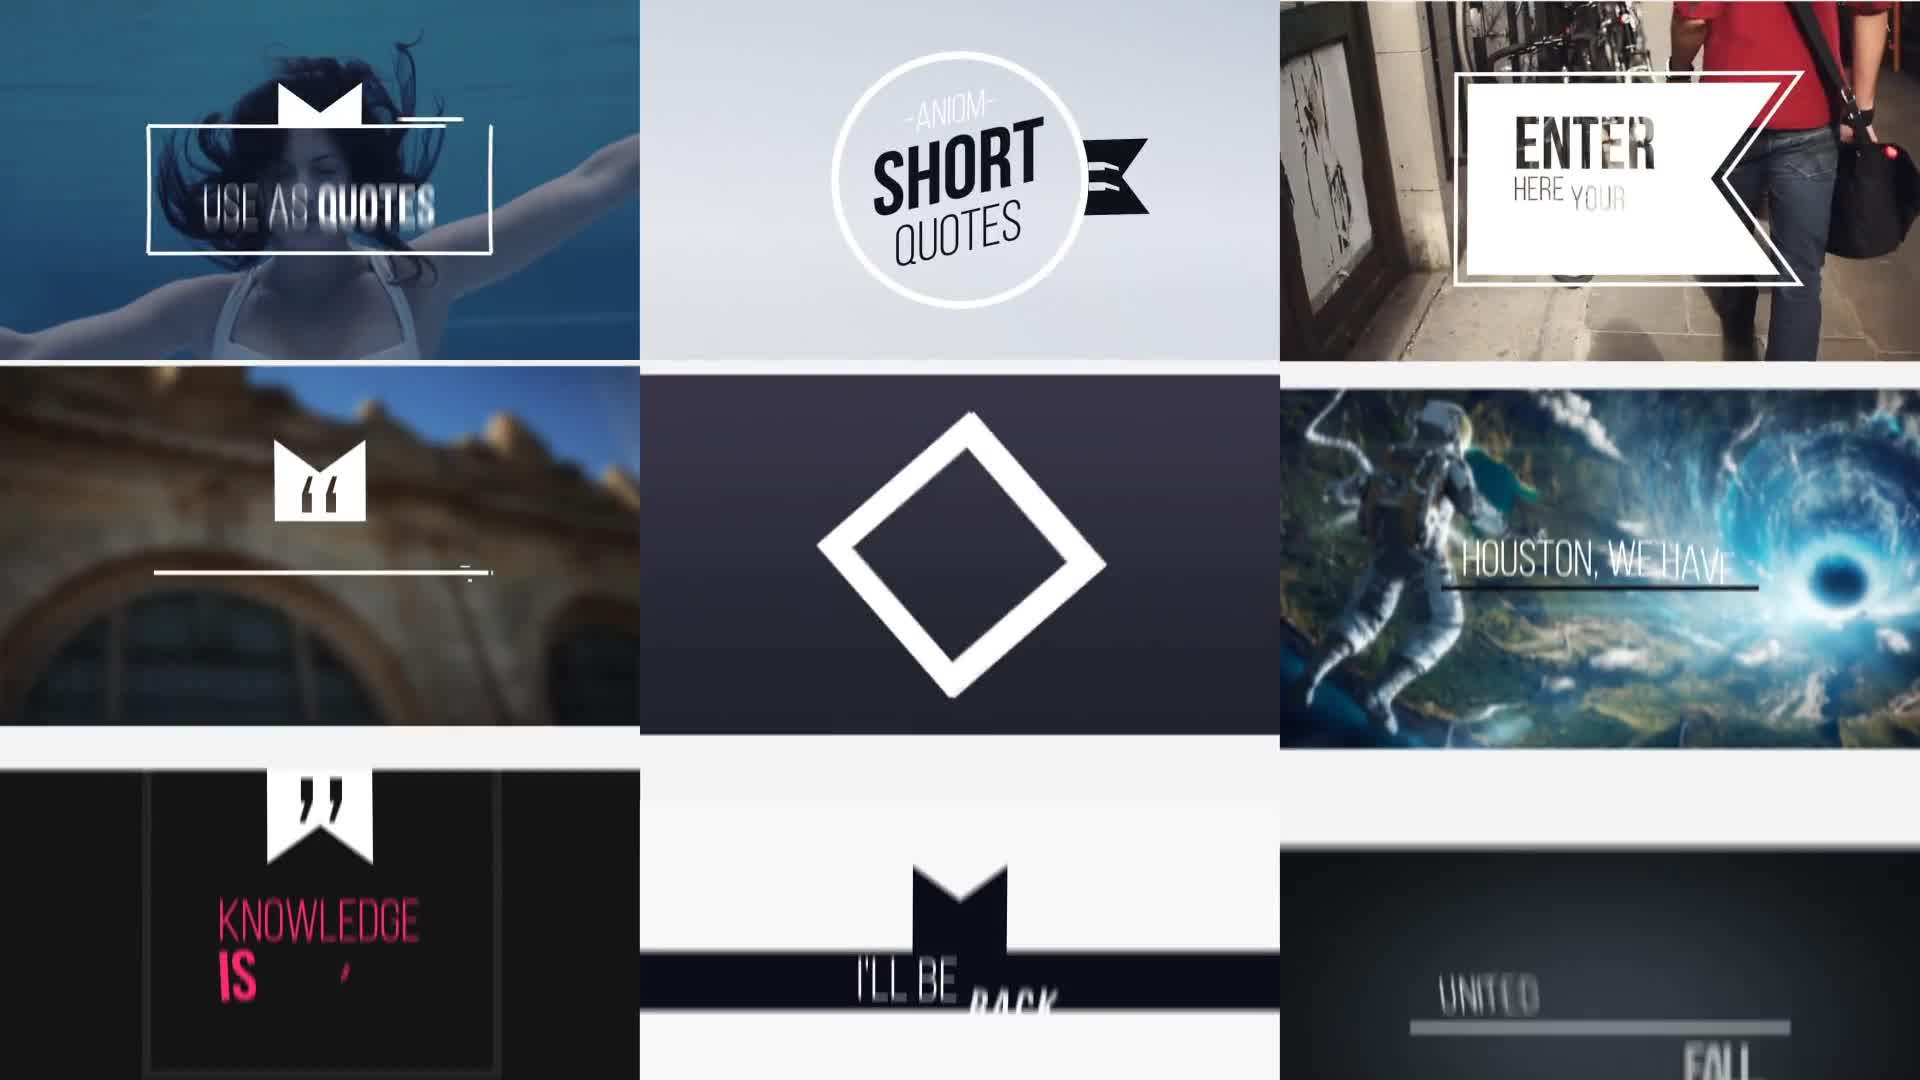 Short Quotes - Download Videohive 21811904